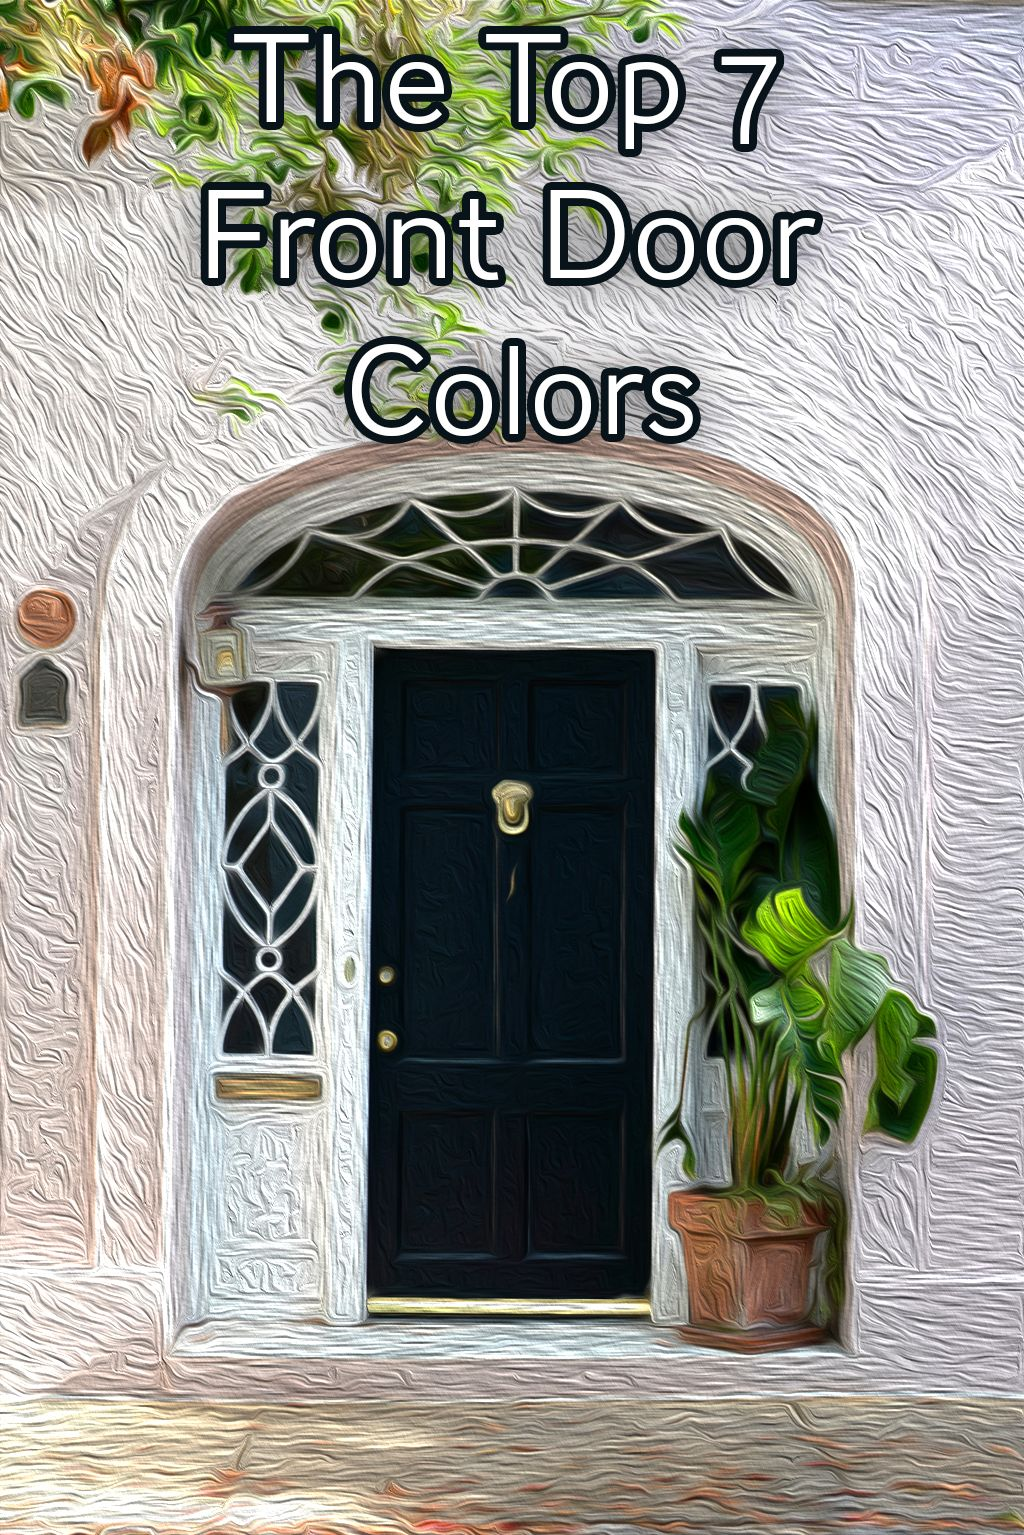 The white house front door arch clipart clip library library The 7 Best Front Door Colors for 2018 | Rugh Design clip library library